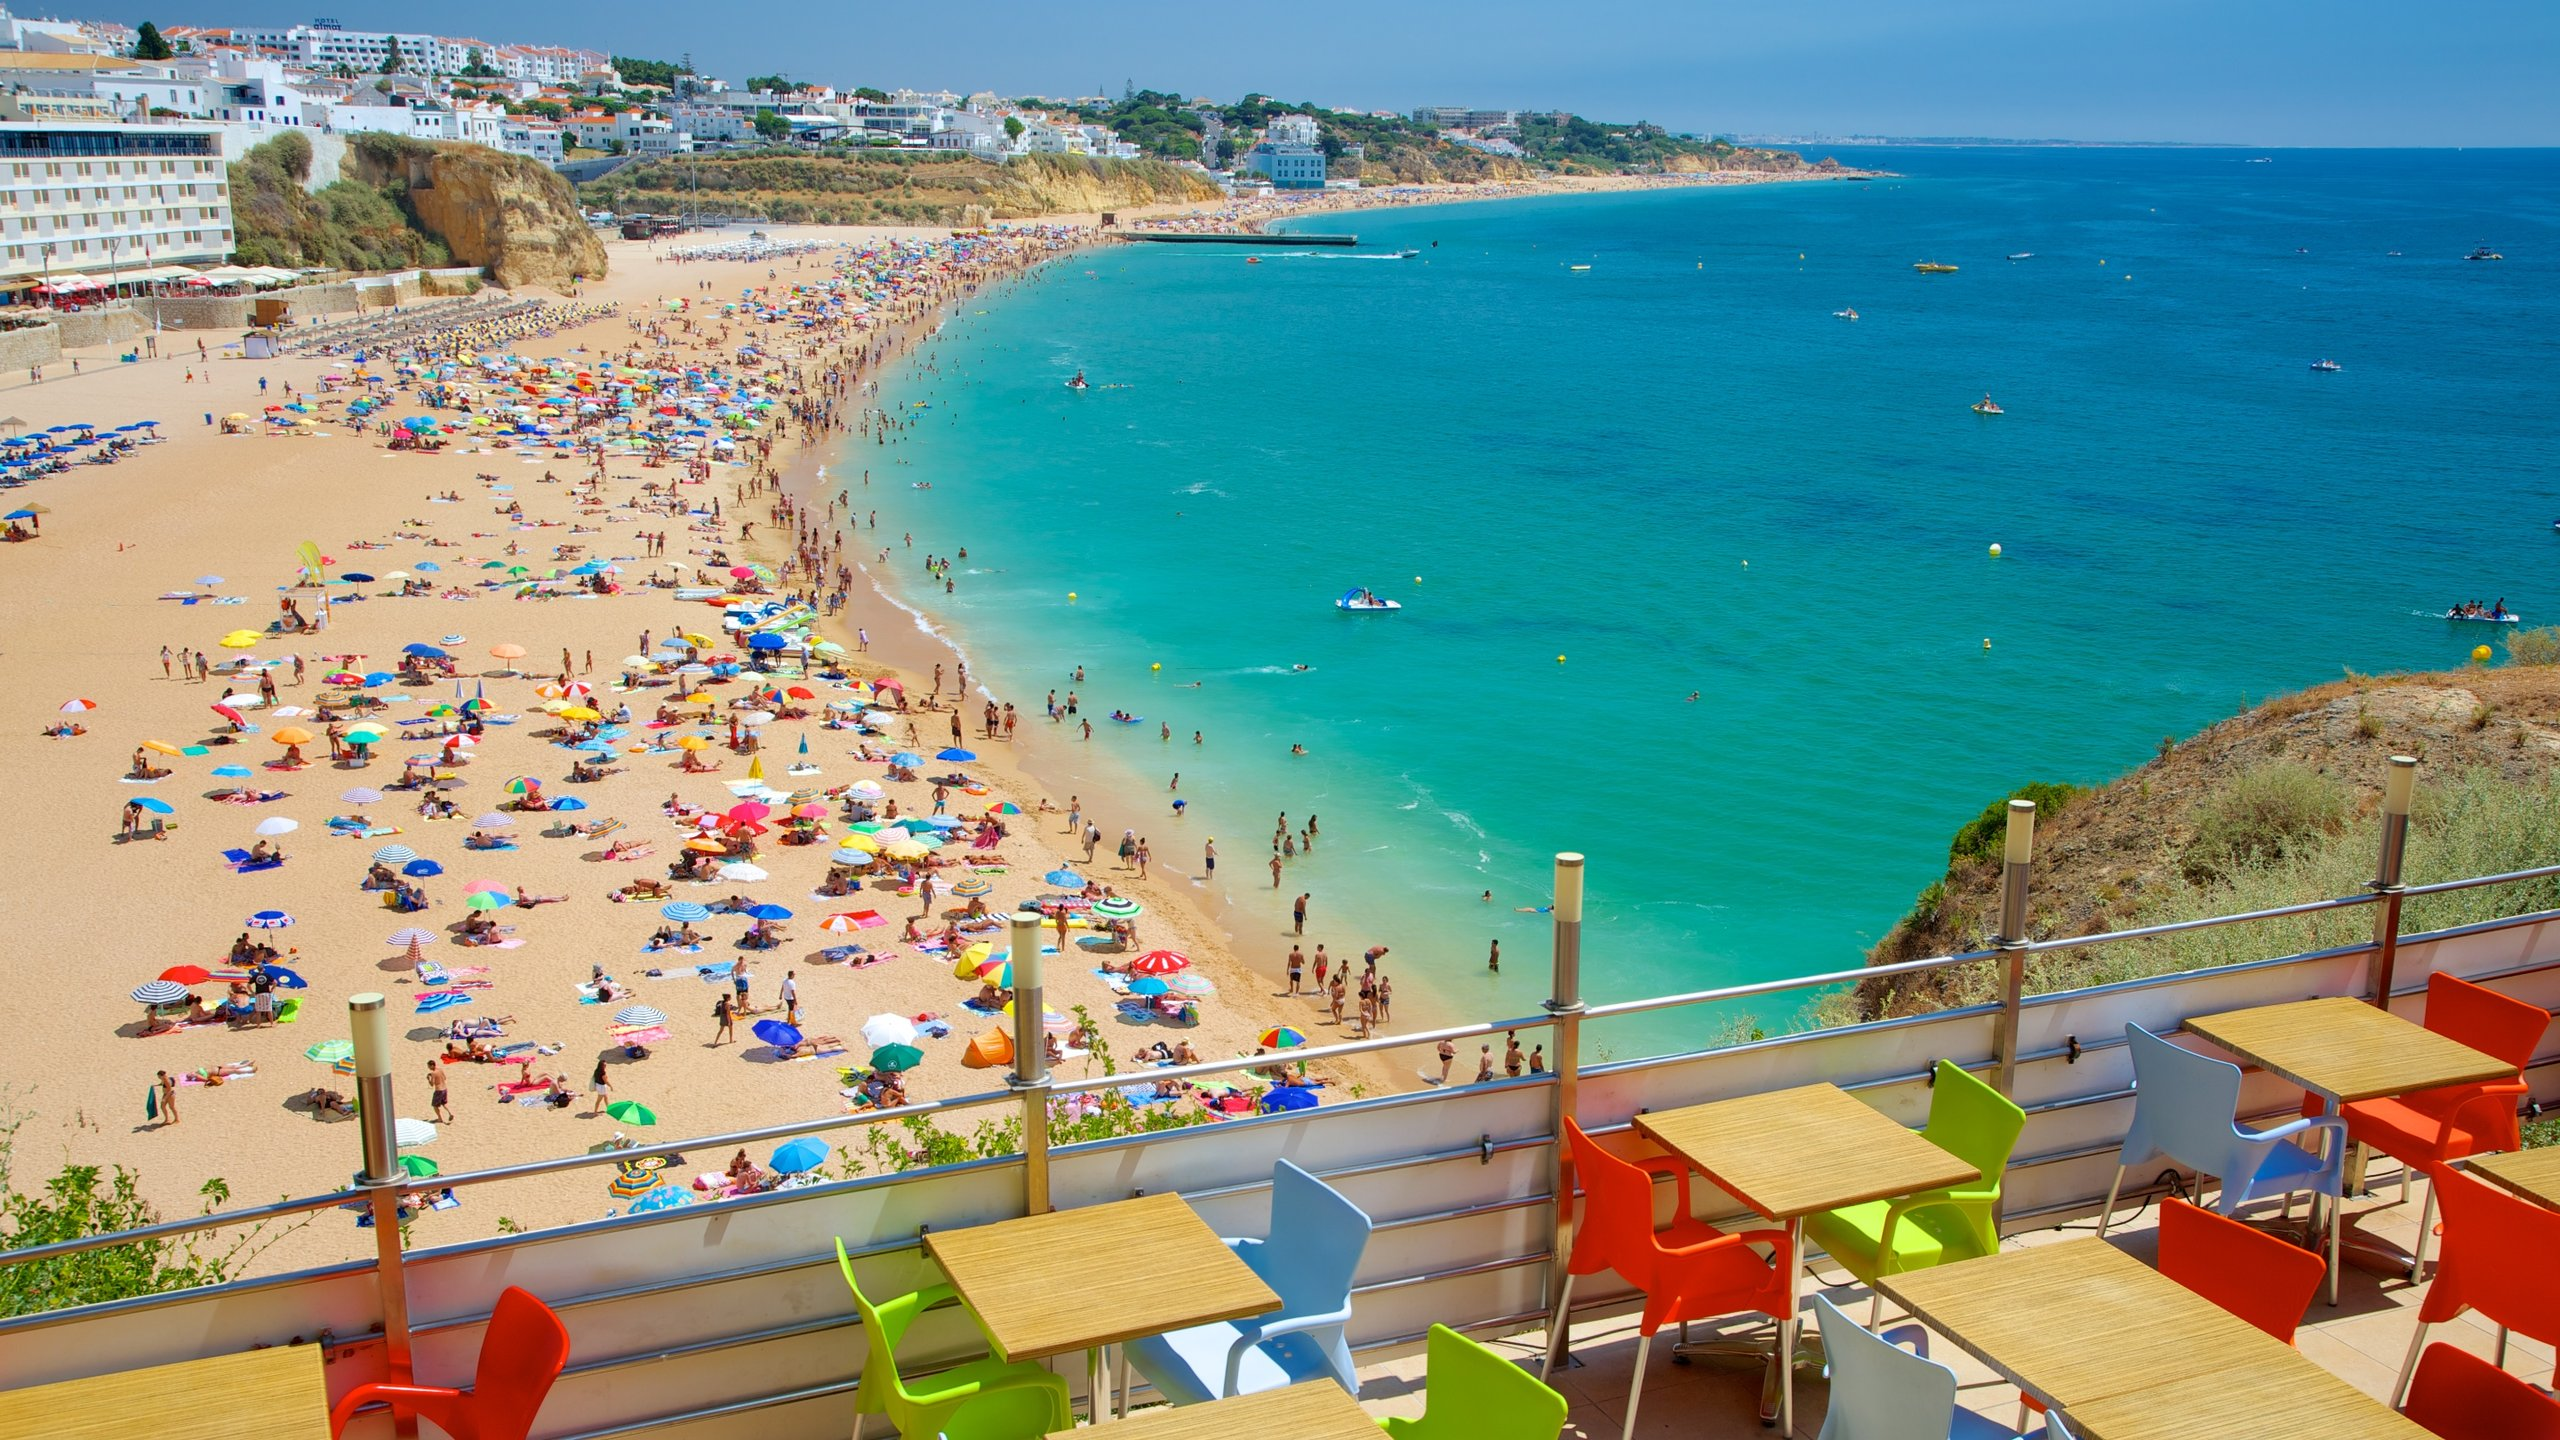 Hotel Tivoli Carvoeiro Algarve Booking Algarve Hotels 2019 Book Top Hotels In Algarve Expedia